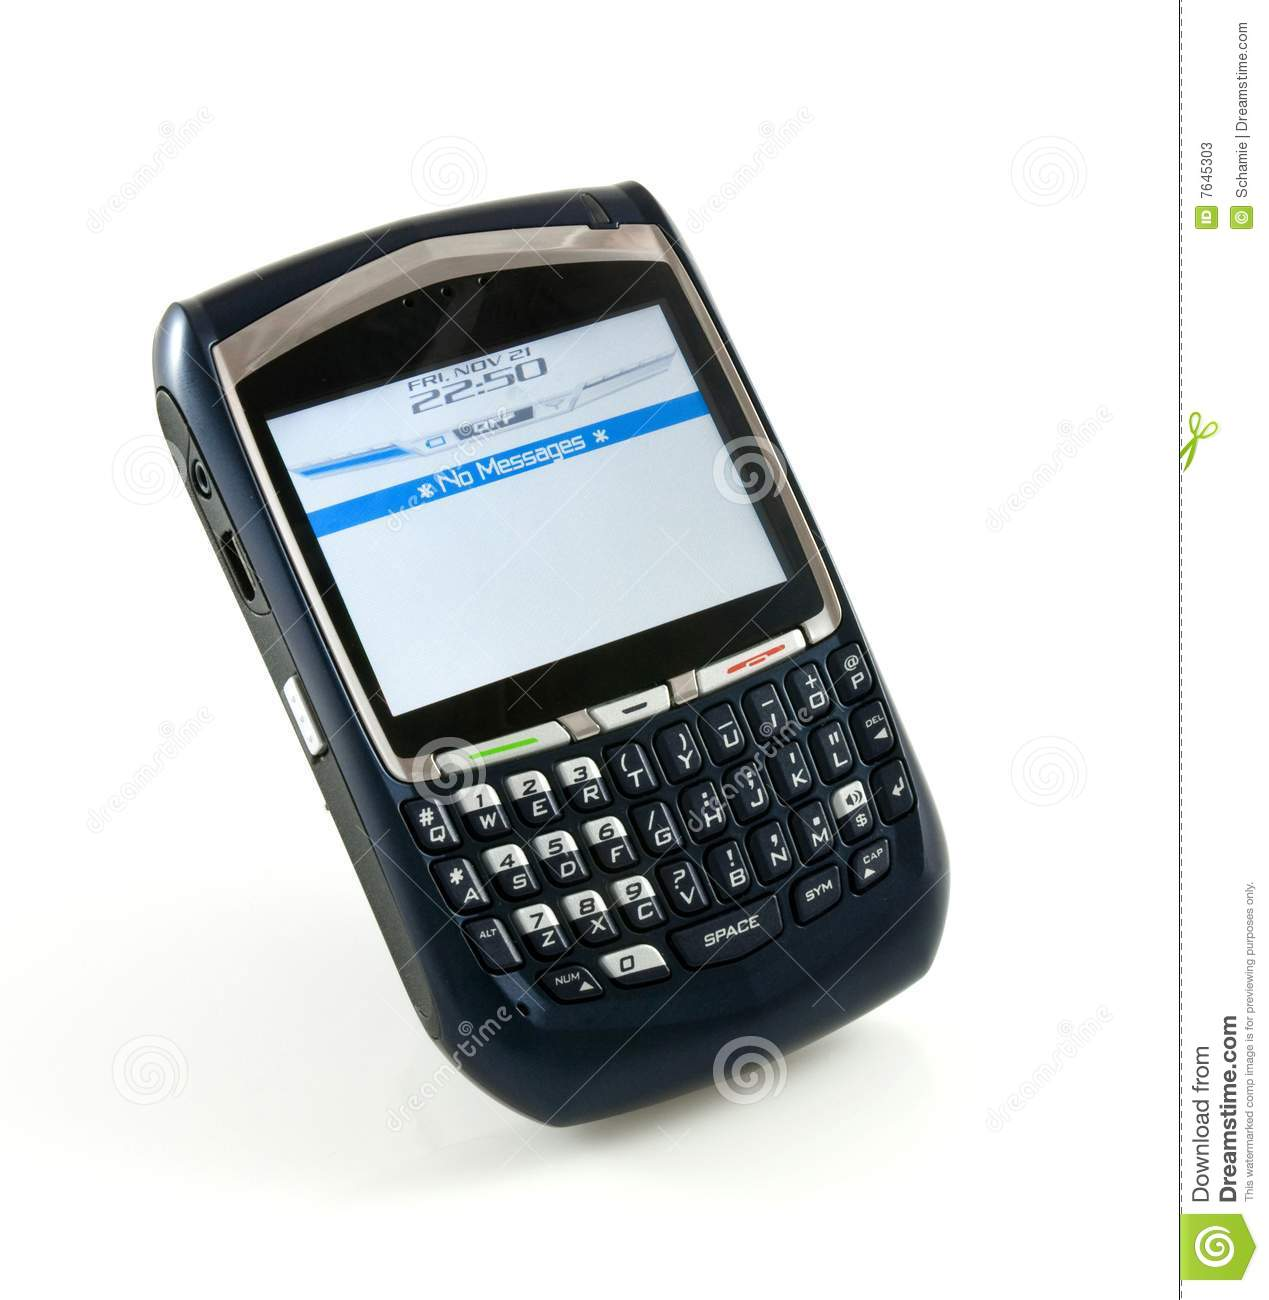 clipart for blackberry phone - photo #32